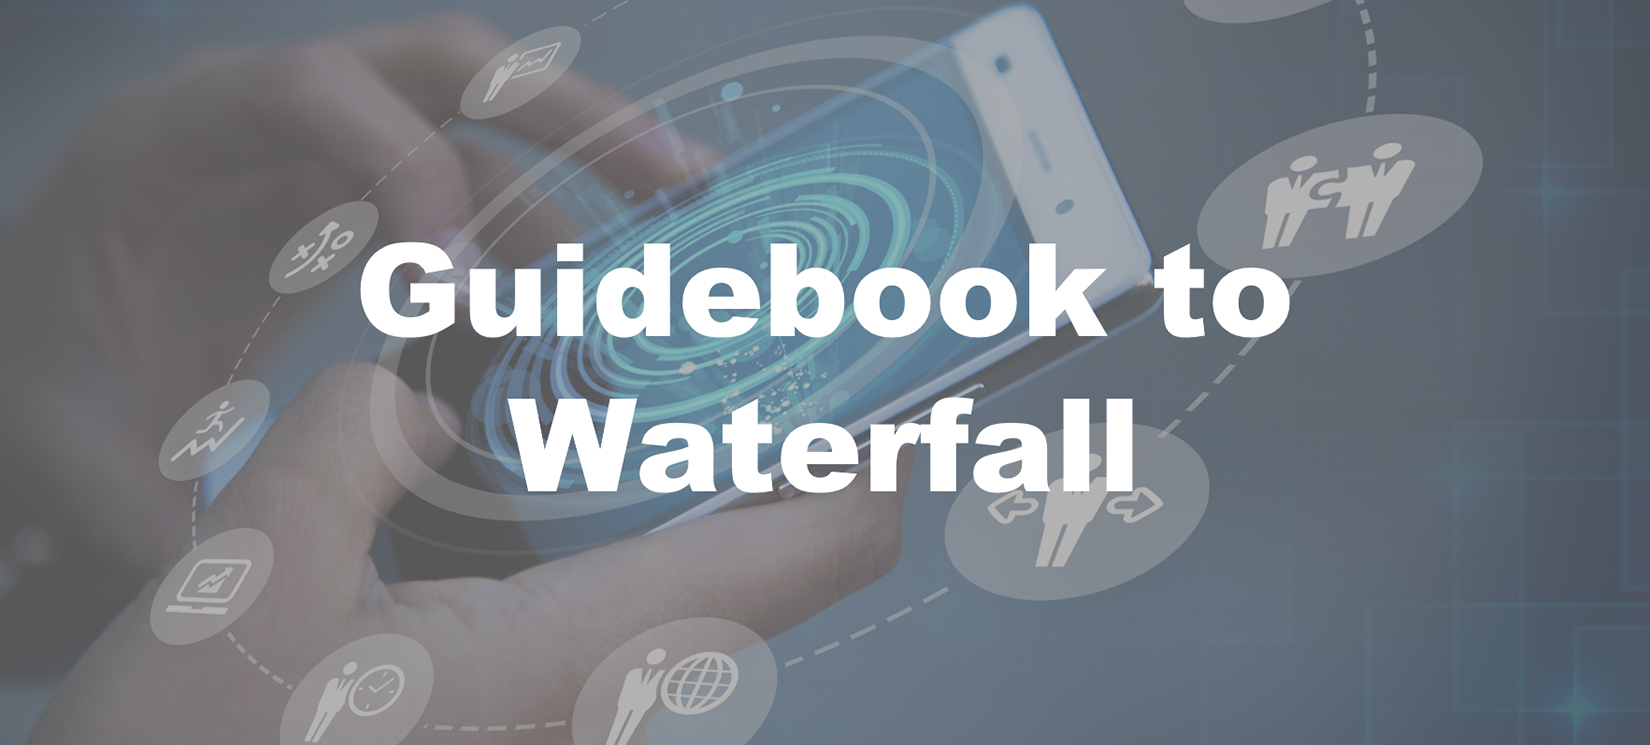 A Guidebook to Waterfall